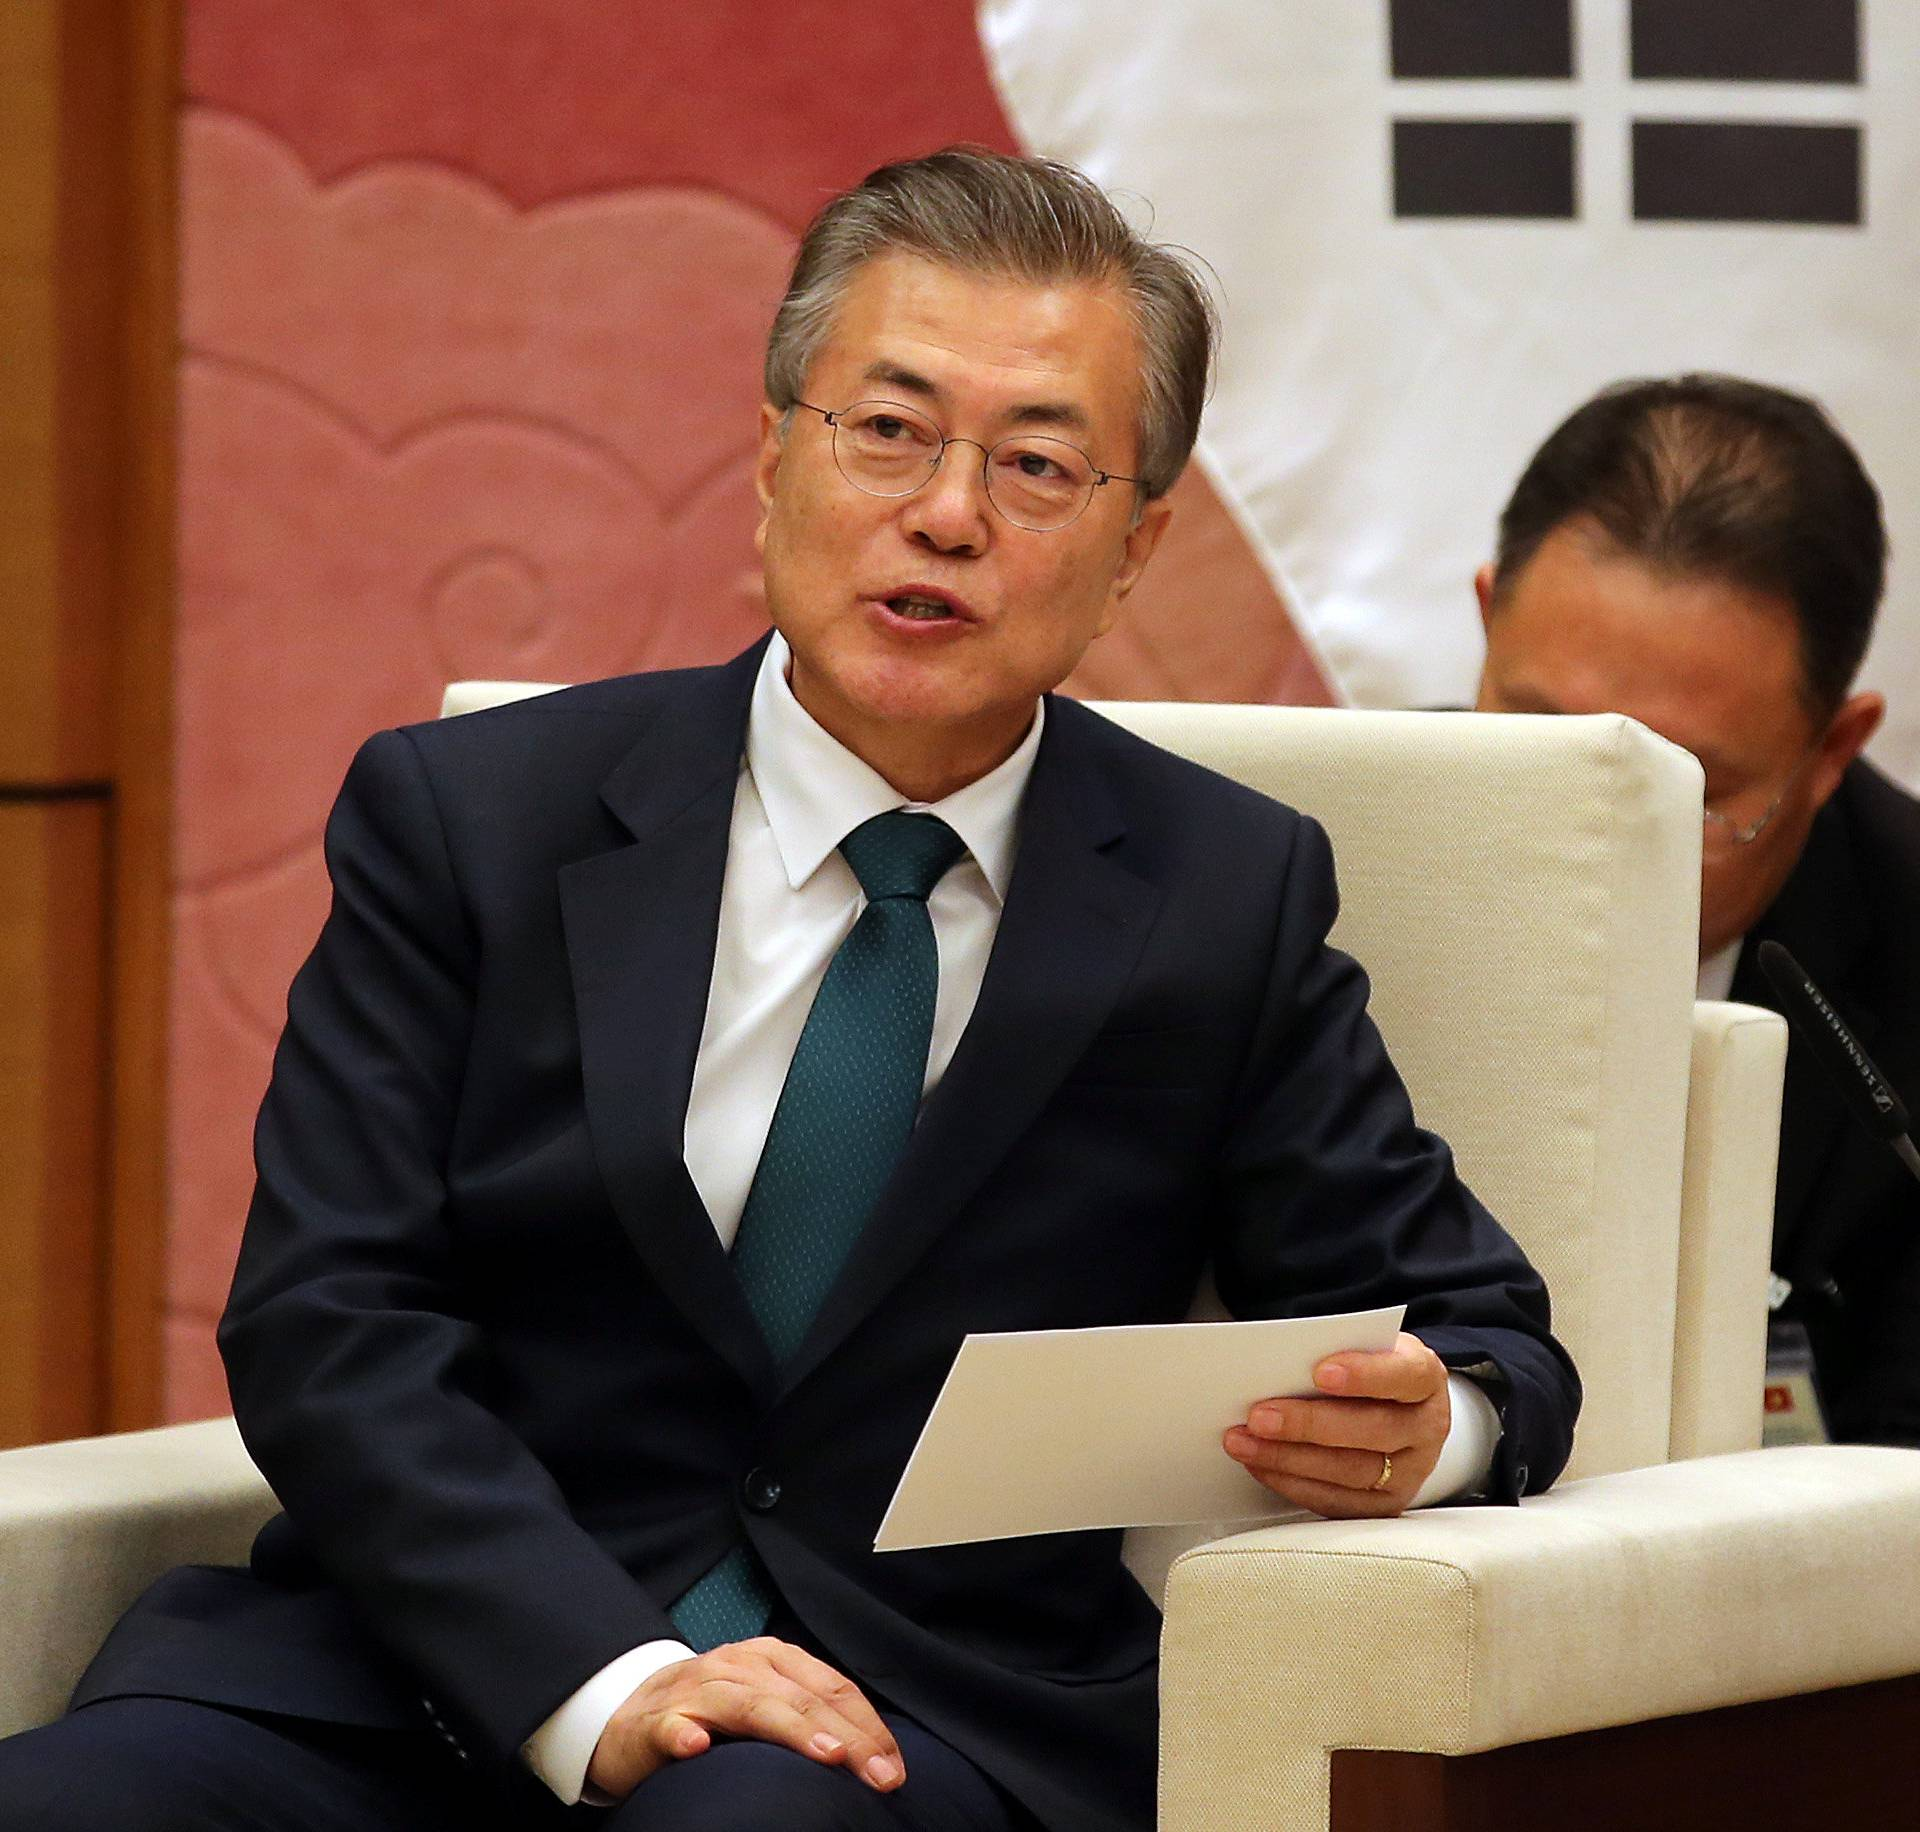 South Korean President Moon Jae-in talks to Vietnamese Chairwoman of the National Assembly Nguyen Thi Kim Ngan at the National Assembly in Hanoi